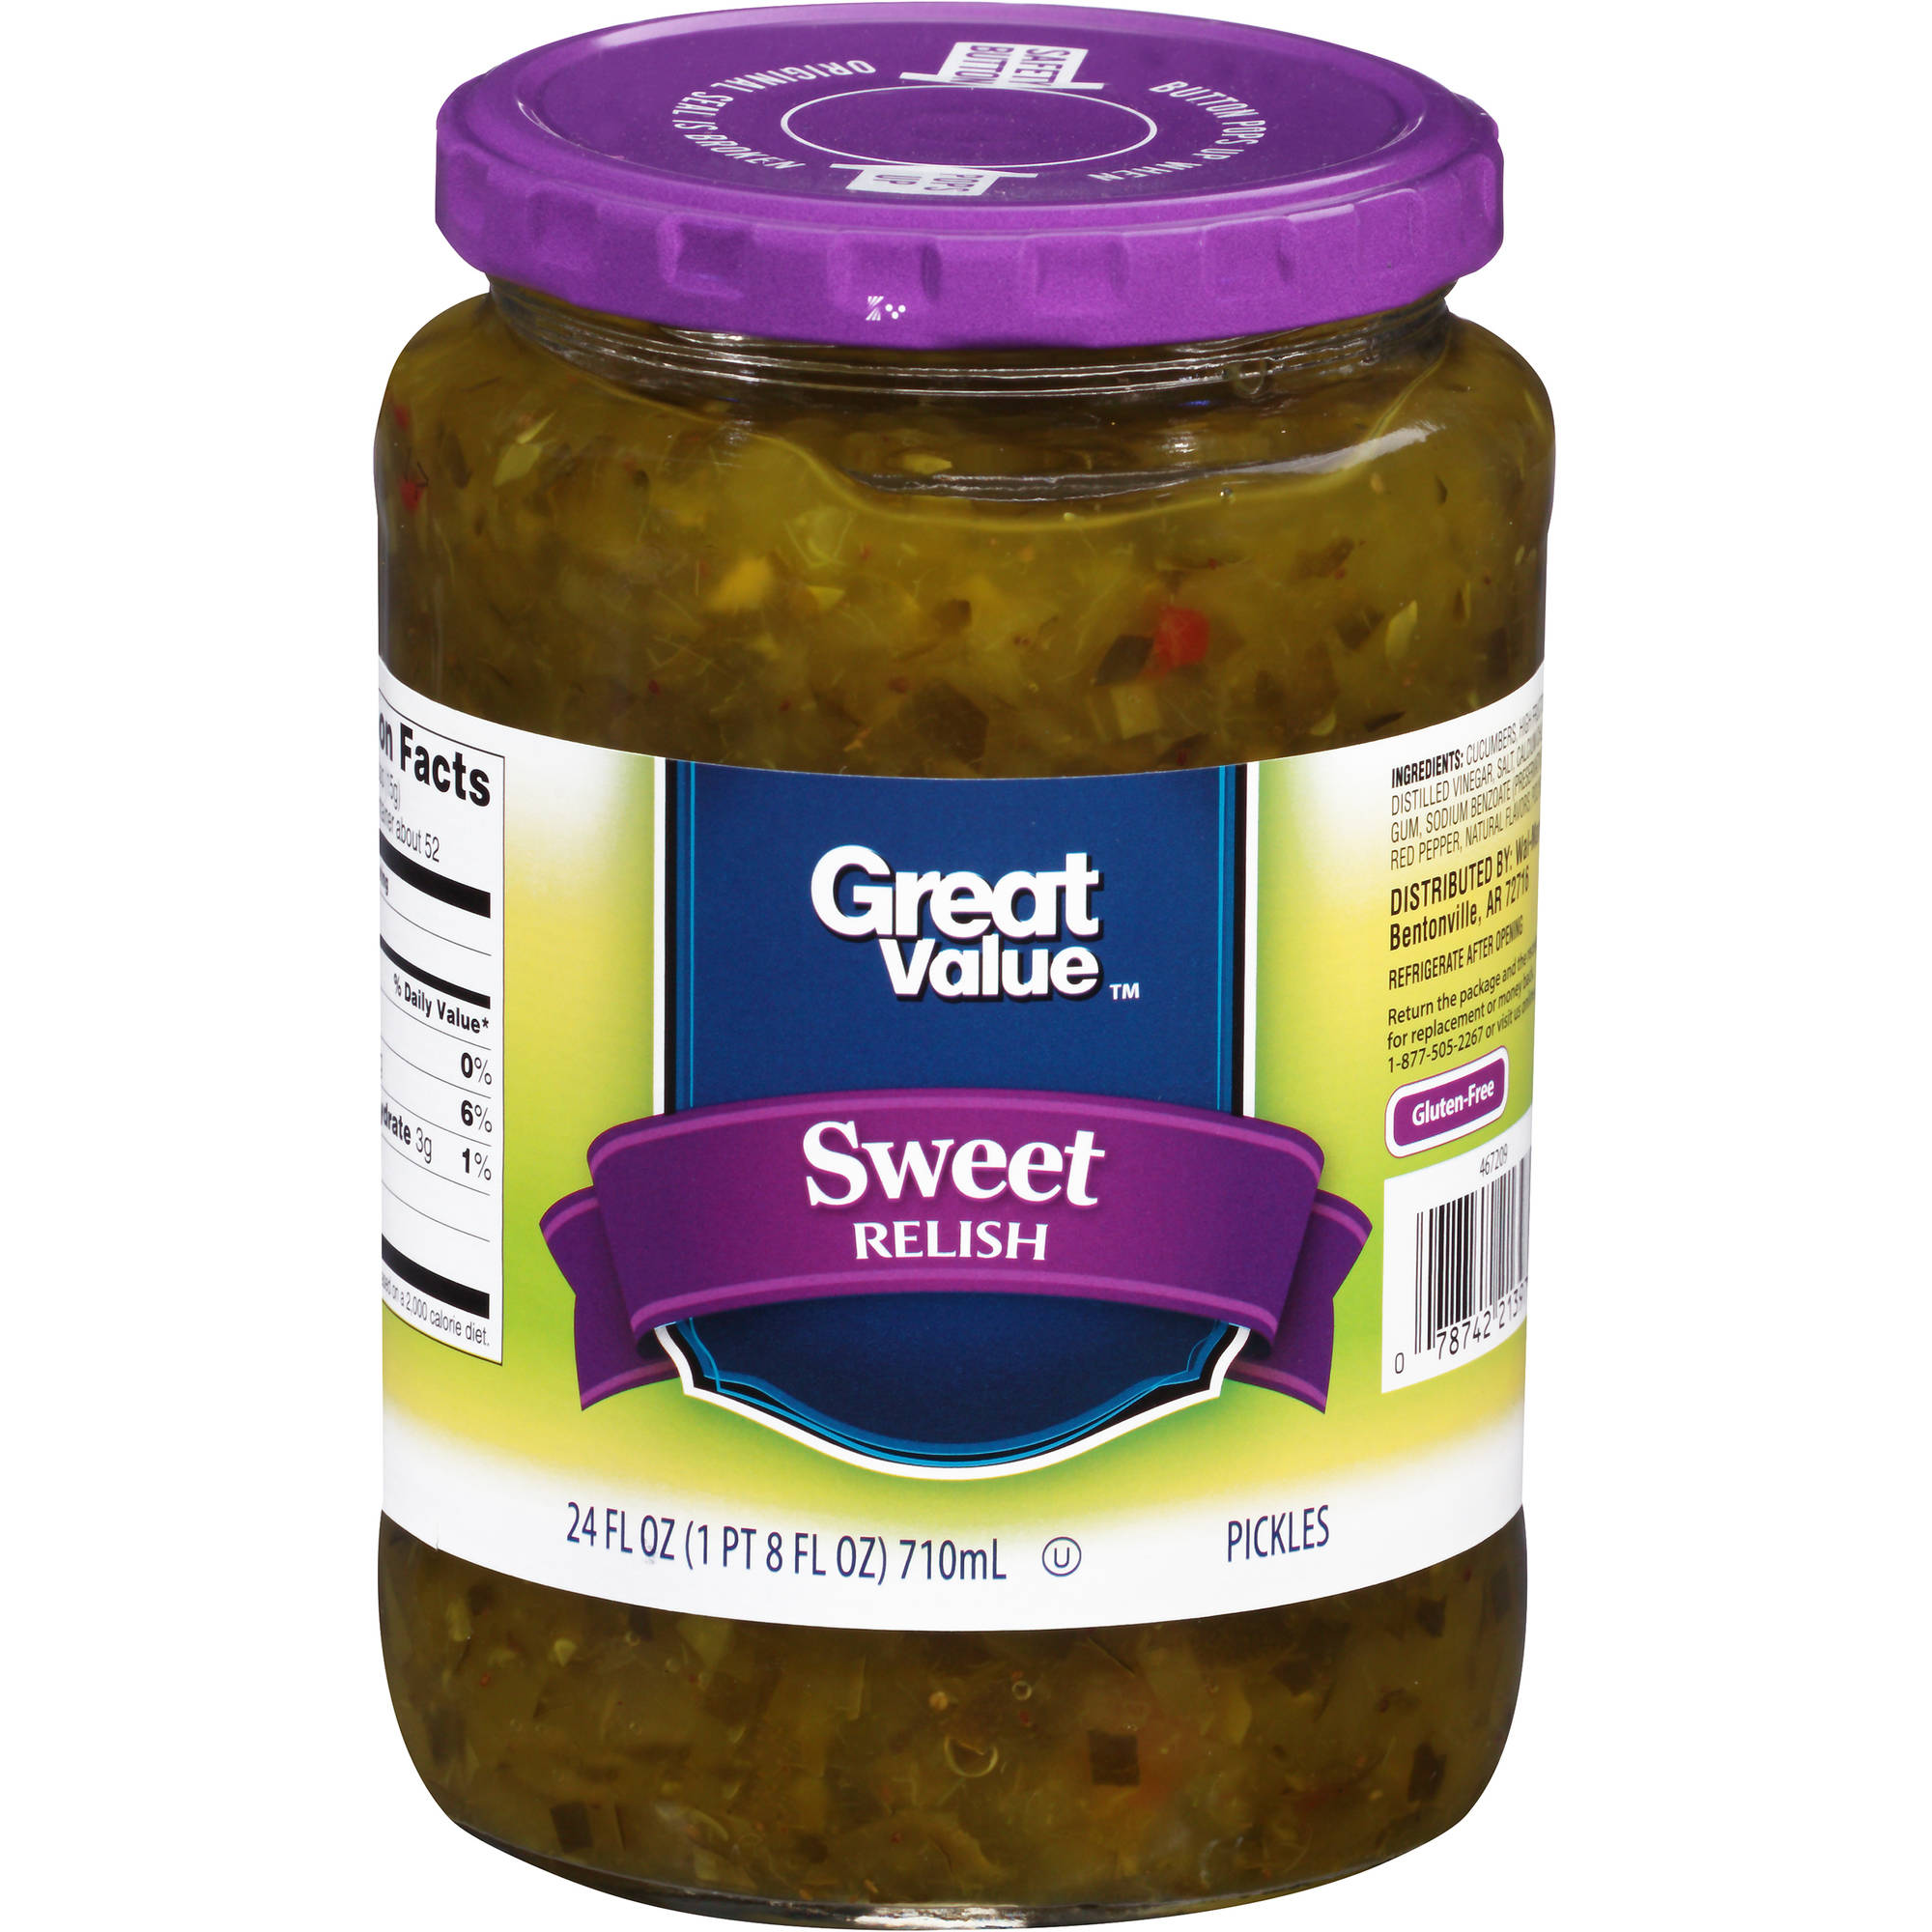 Great Value Sweet Relish, 24 fl oz